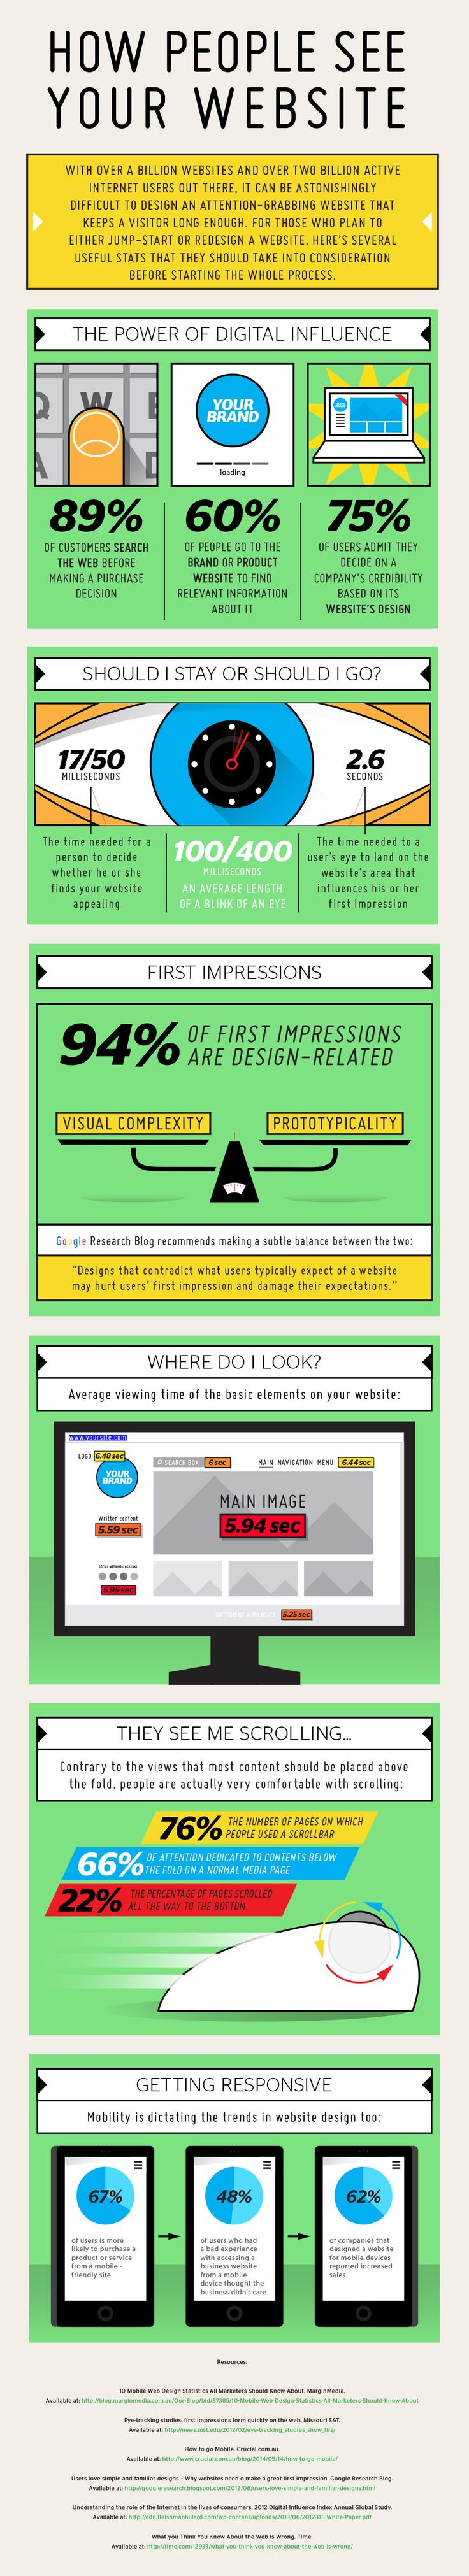 crucial-how-people-see-your-website #42bis #infographic #UX